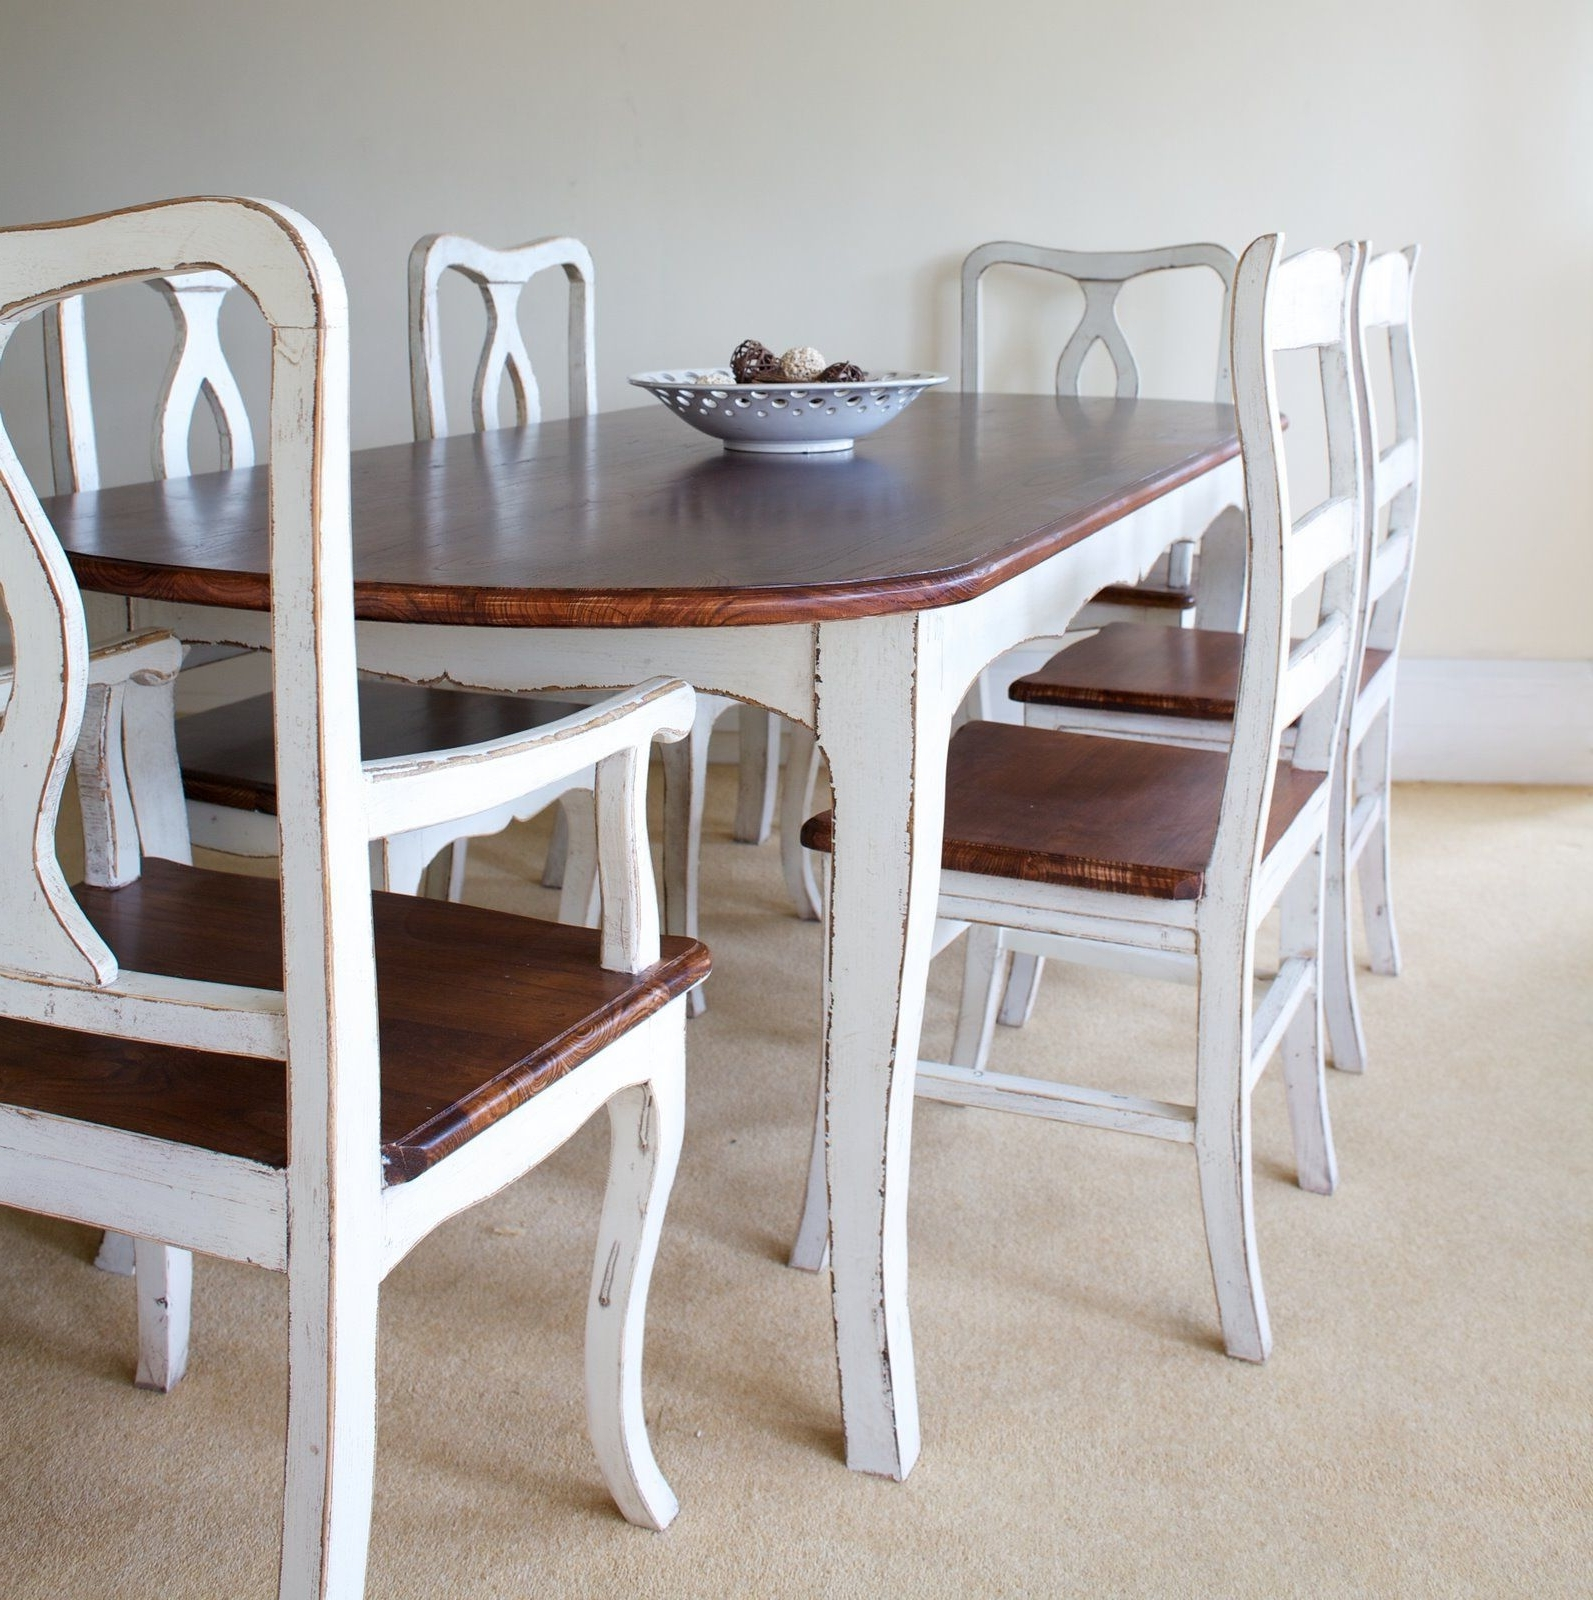 Shabby Dining Tables And Chairs Within Widely Used Furniture : Palejay Diy Shabby Chic Dining Table Part Shabby Chic (View 9 of 25)